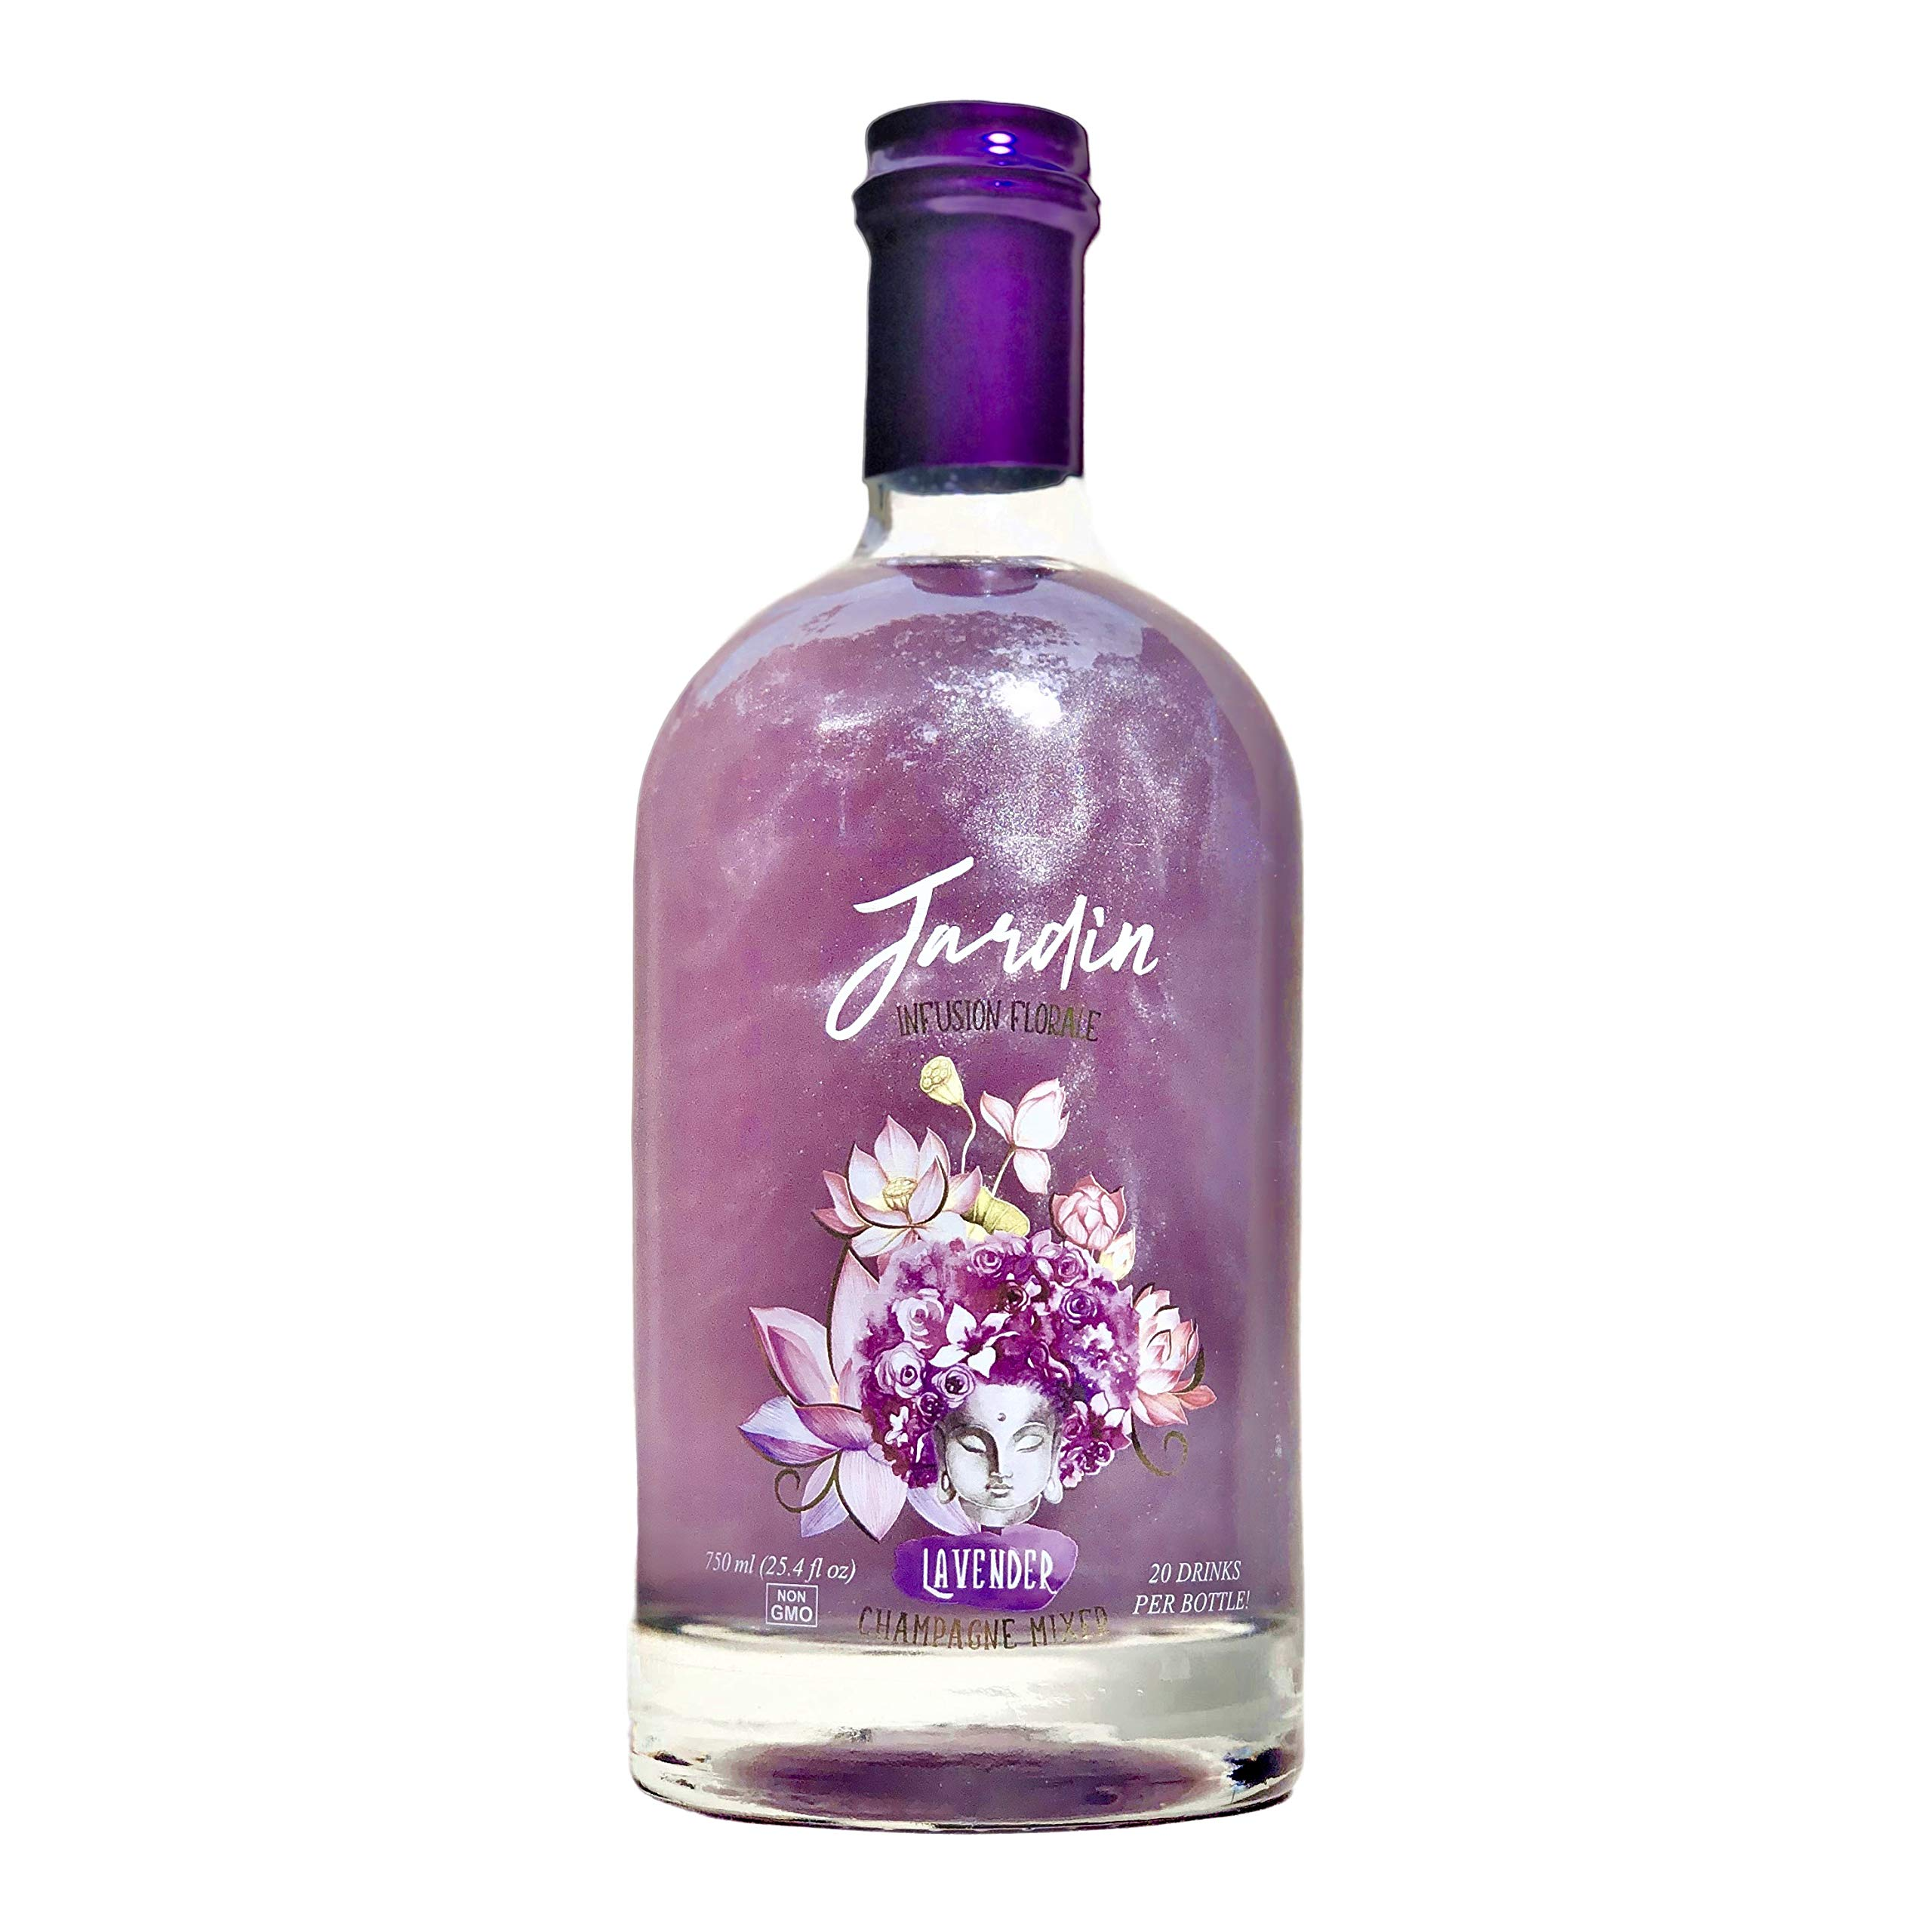 Jardin - Lavender Infused Mixer to Enhance Champagne, Spirits and Non Alcoholic Cocktails, Low Sweetness, Aromatic, Floral, Non-GMO, No Preservatives, Less than 1 g sugar, Shimmer (750 ml)